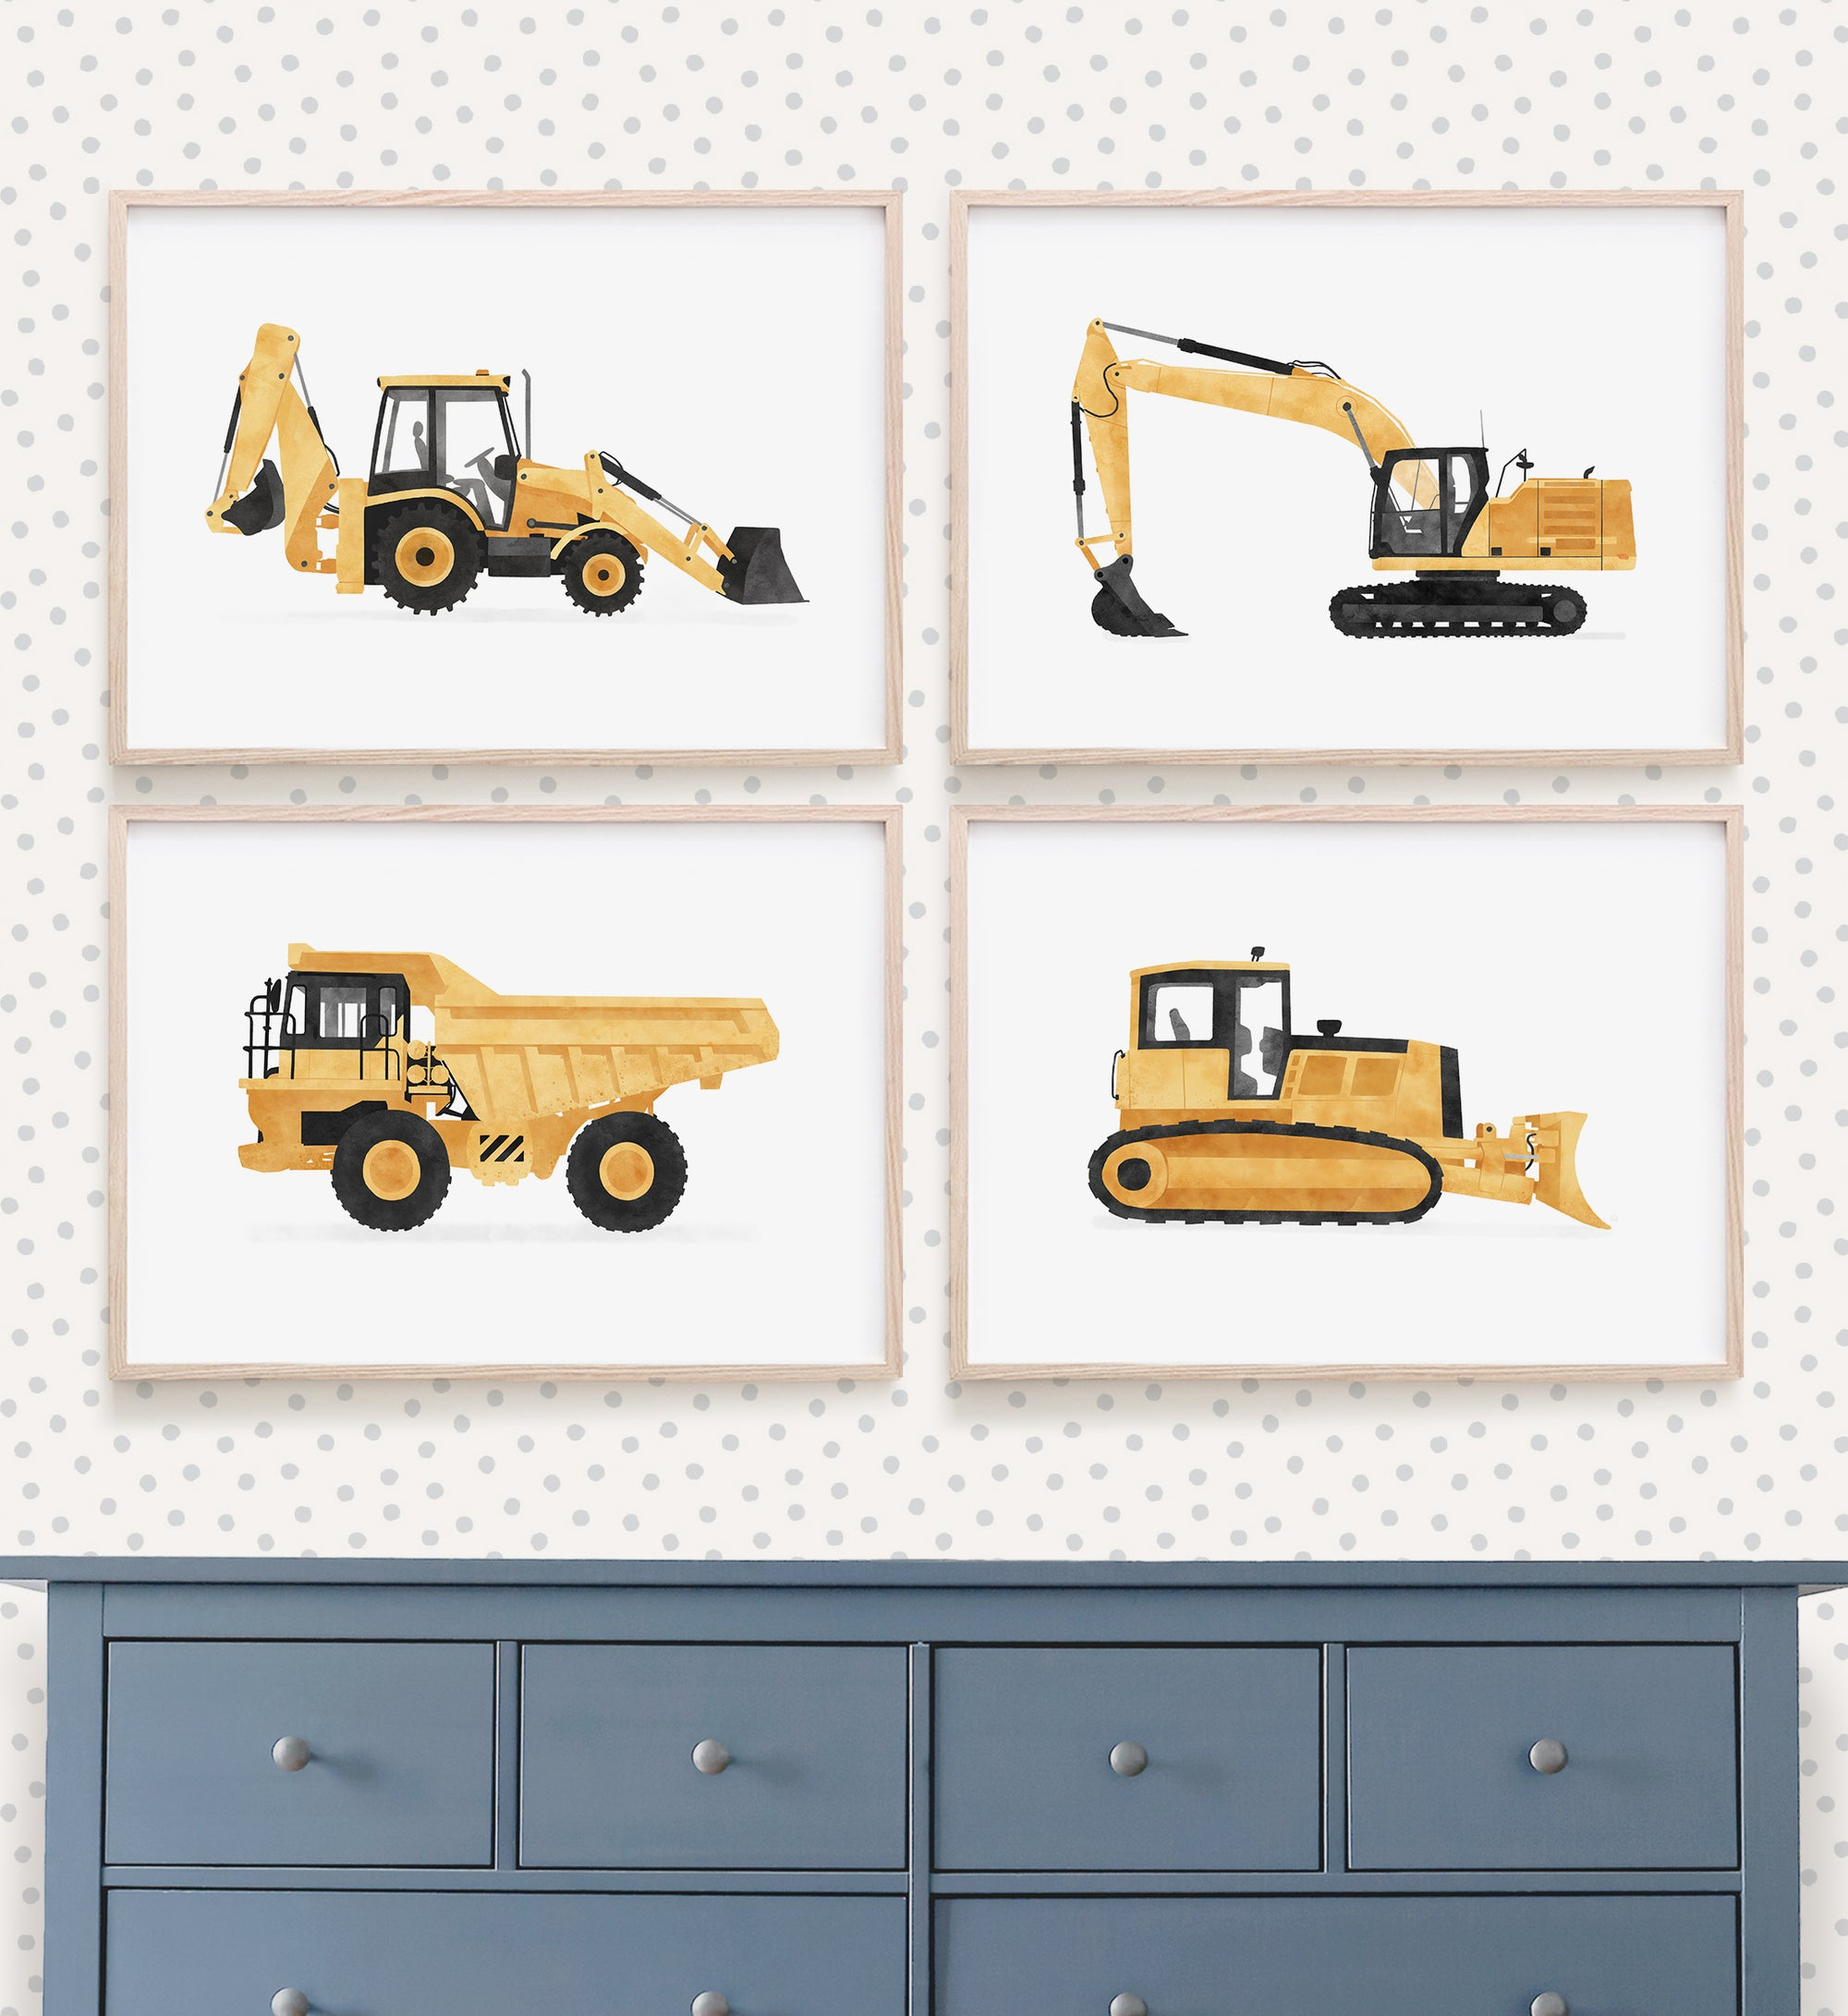 Set of 4 Construction Vehicles - Yellow